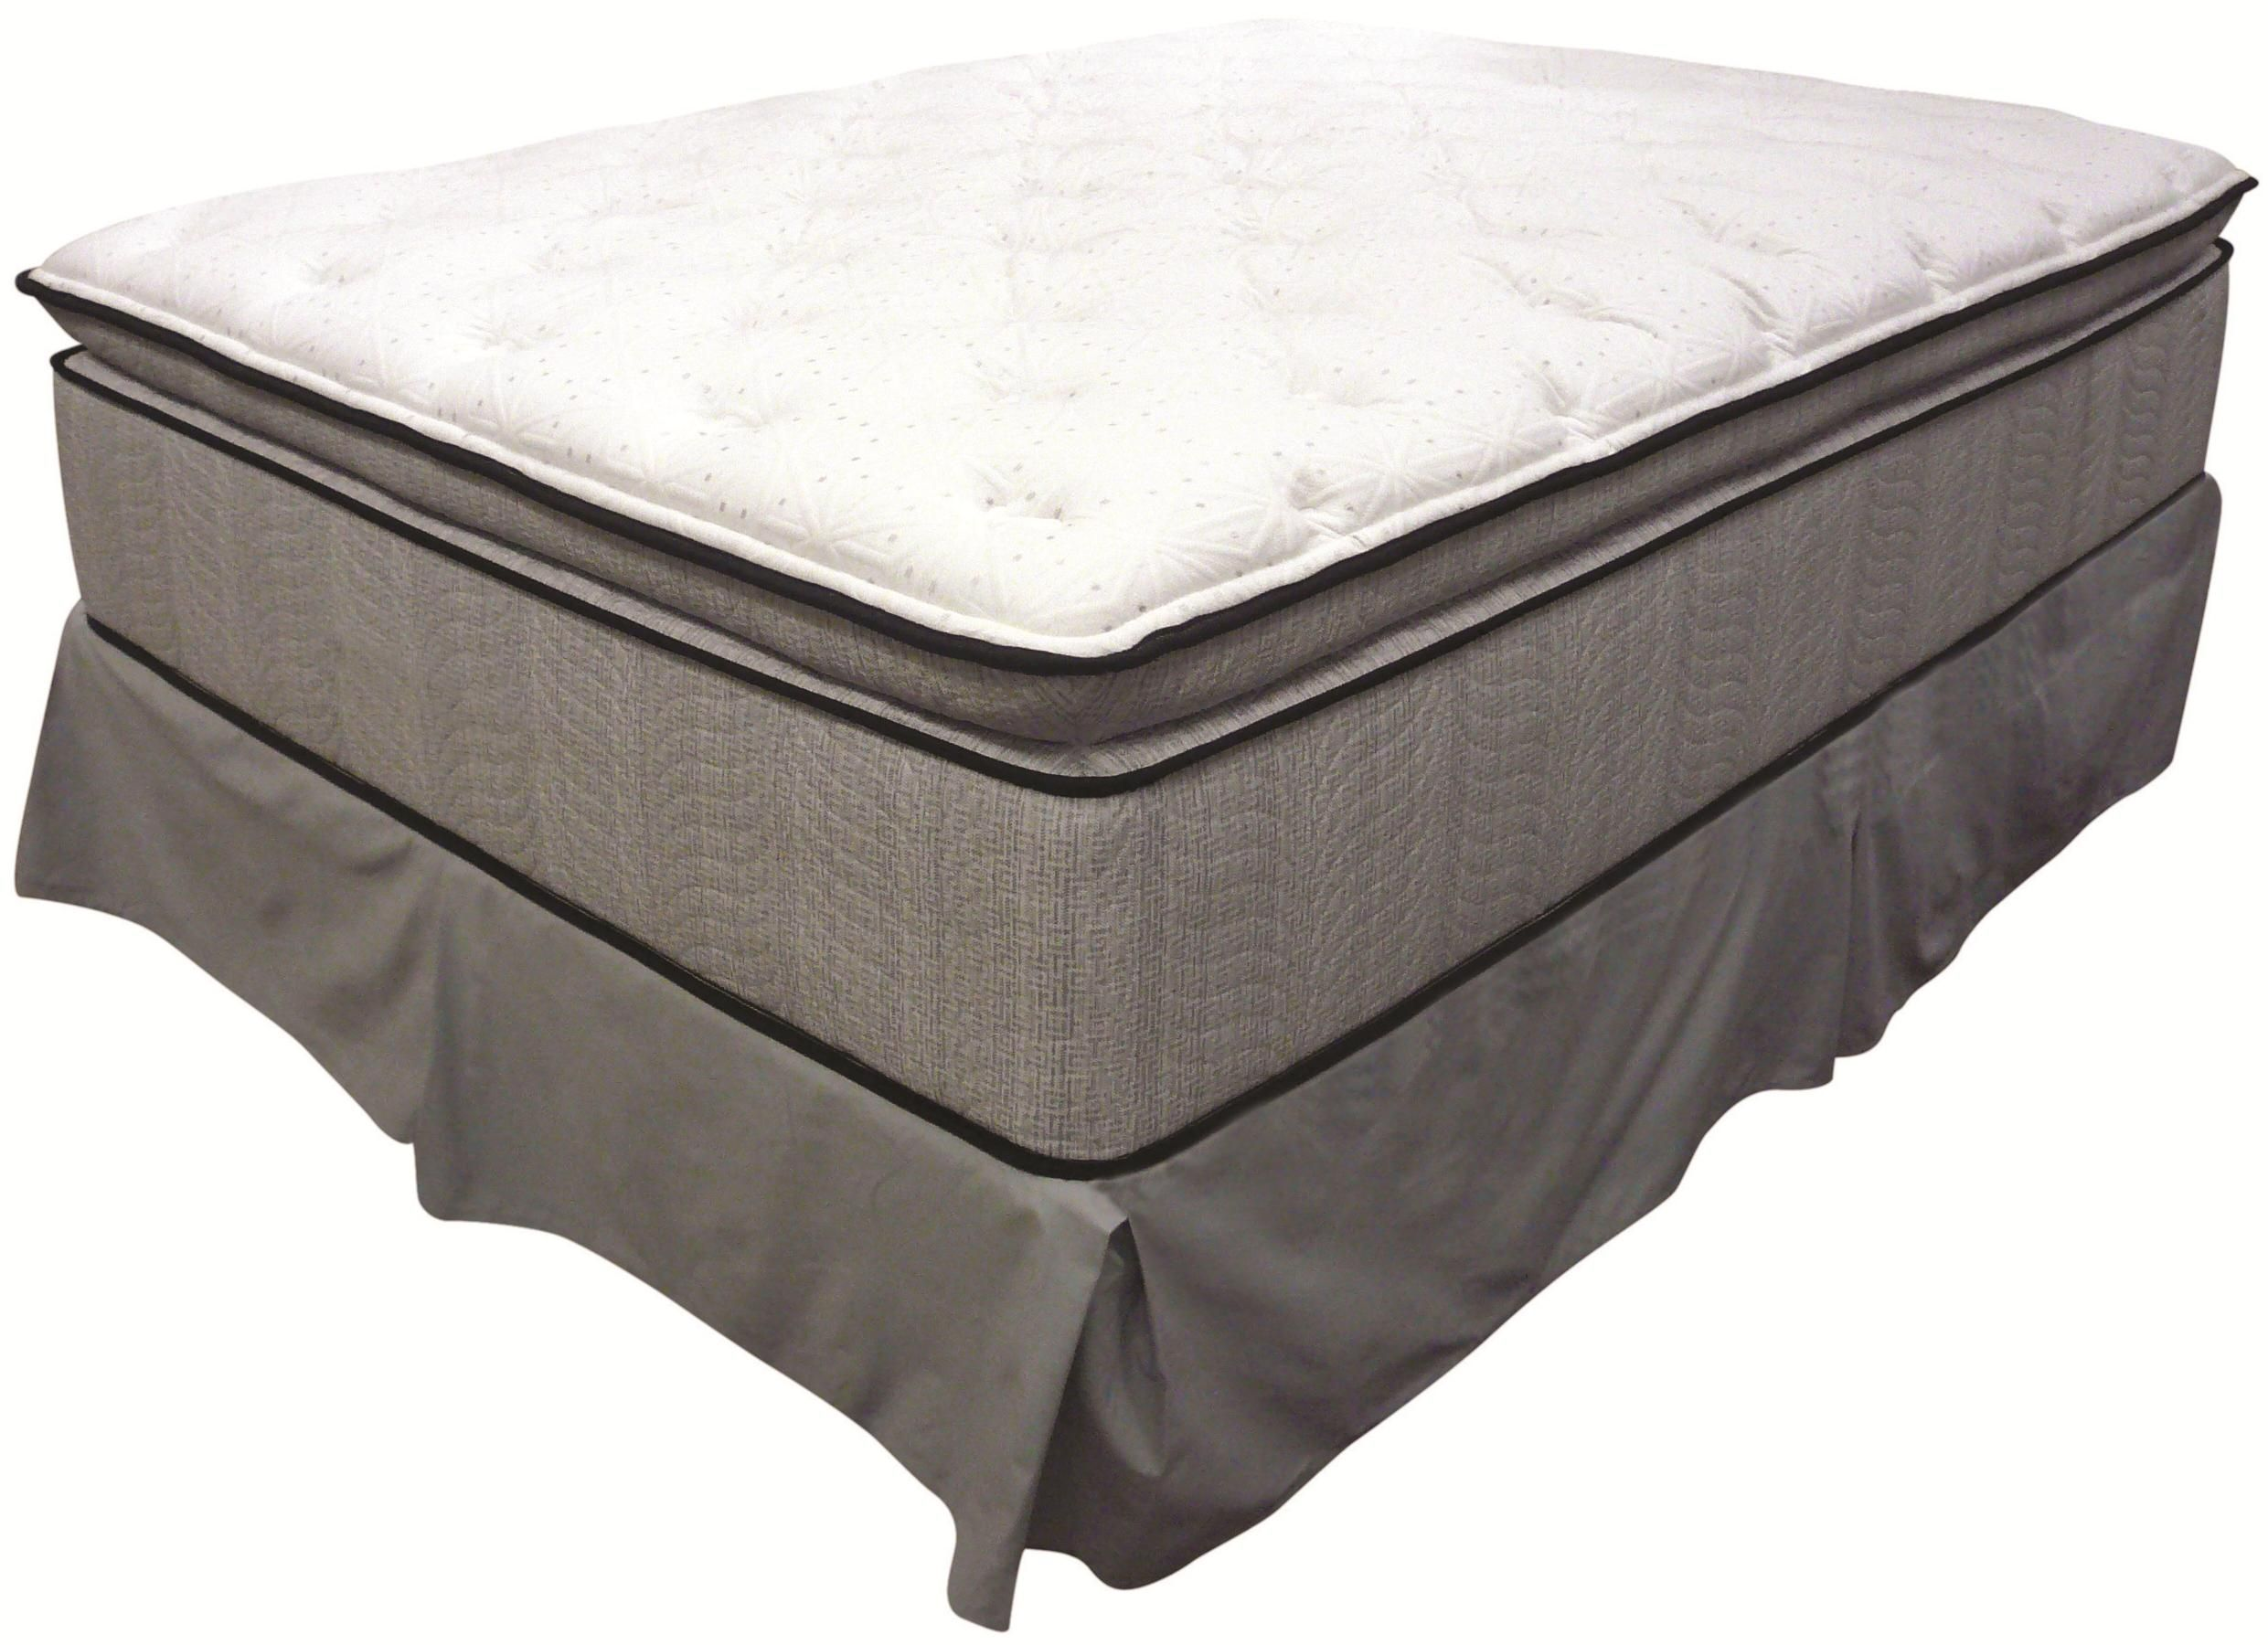 pillowtop mattress pillow best reviews twin serenity memory mlily image inch top foam mattresses bamboo